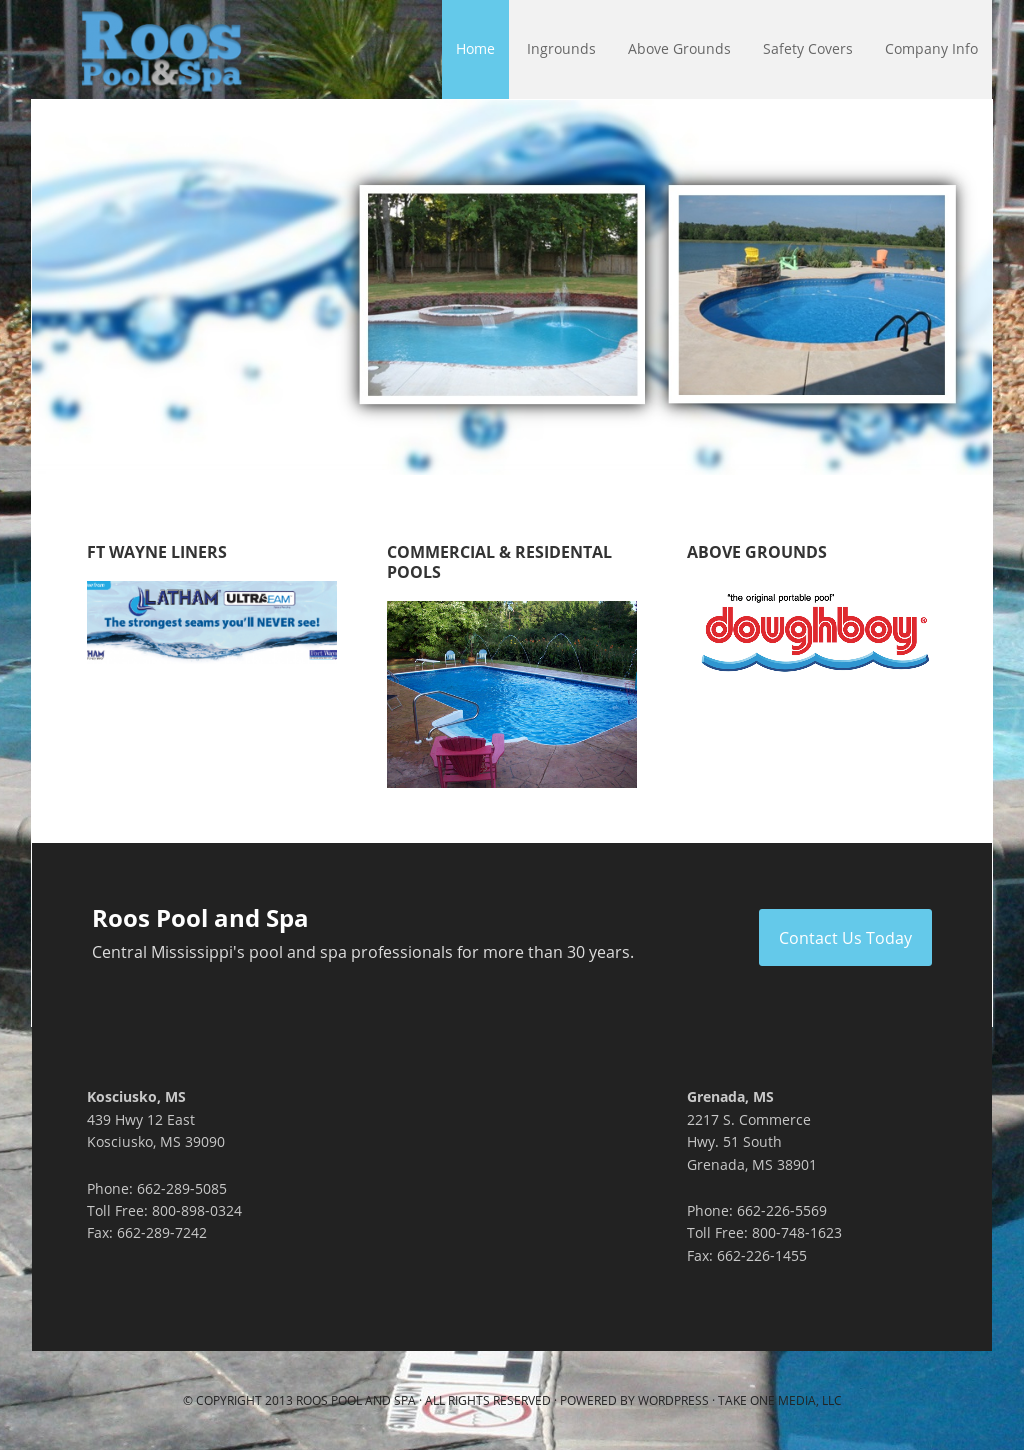 Roos Pool And Spa Grenada Ms Tyres2c